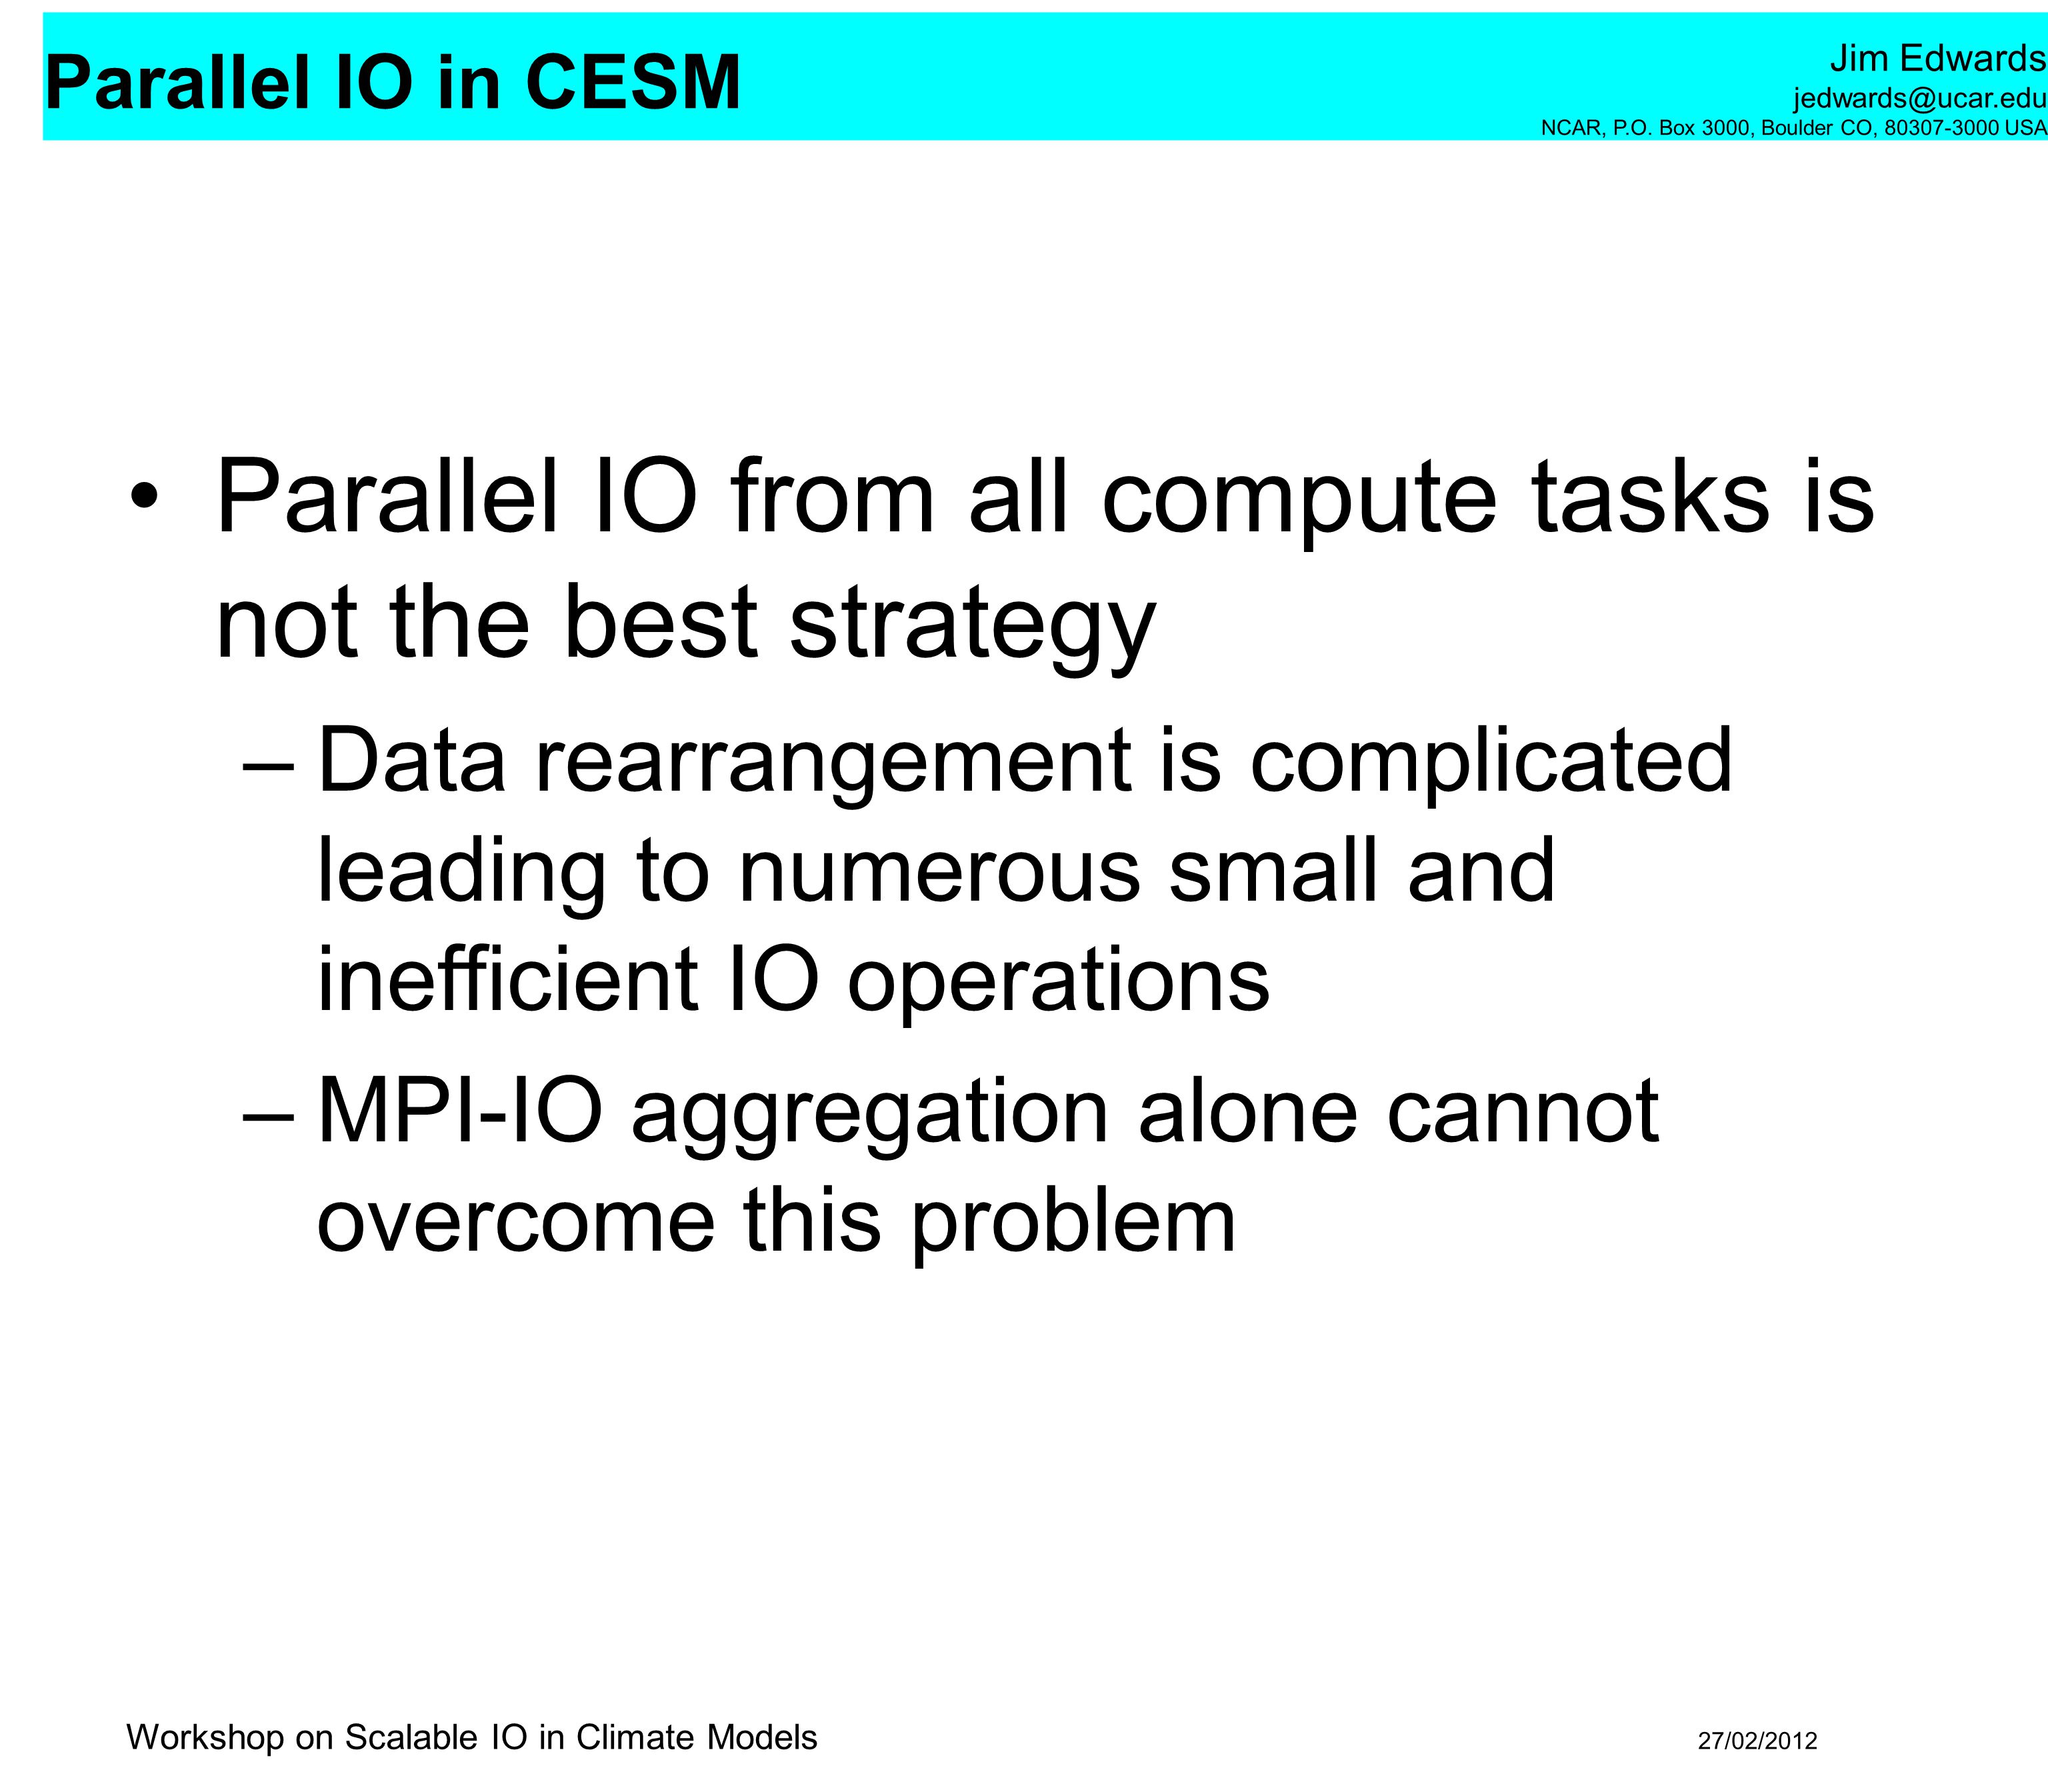 Parallel IO from all compute tasks is not the best strategy